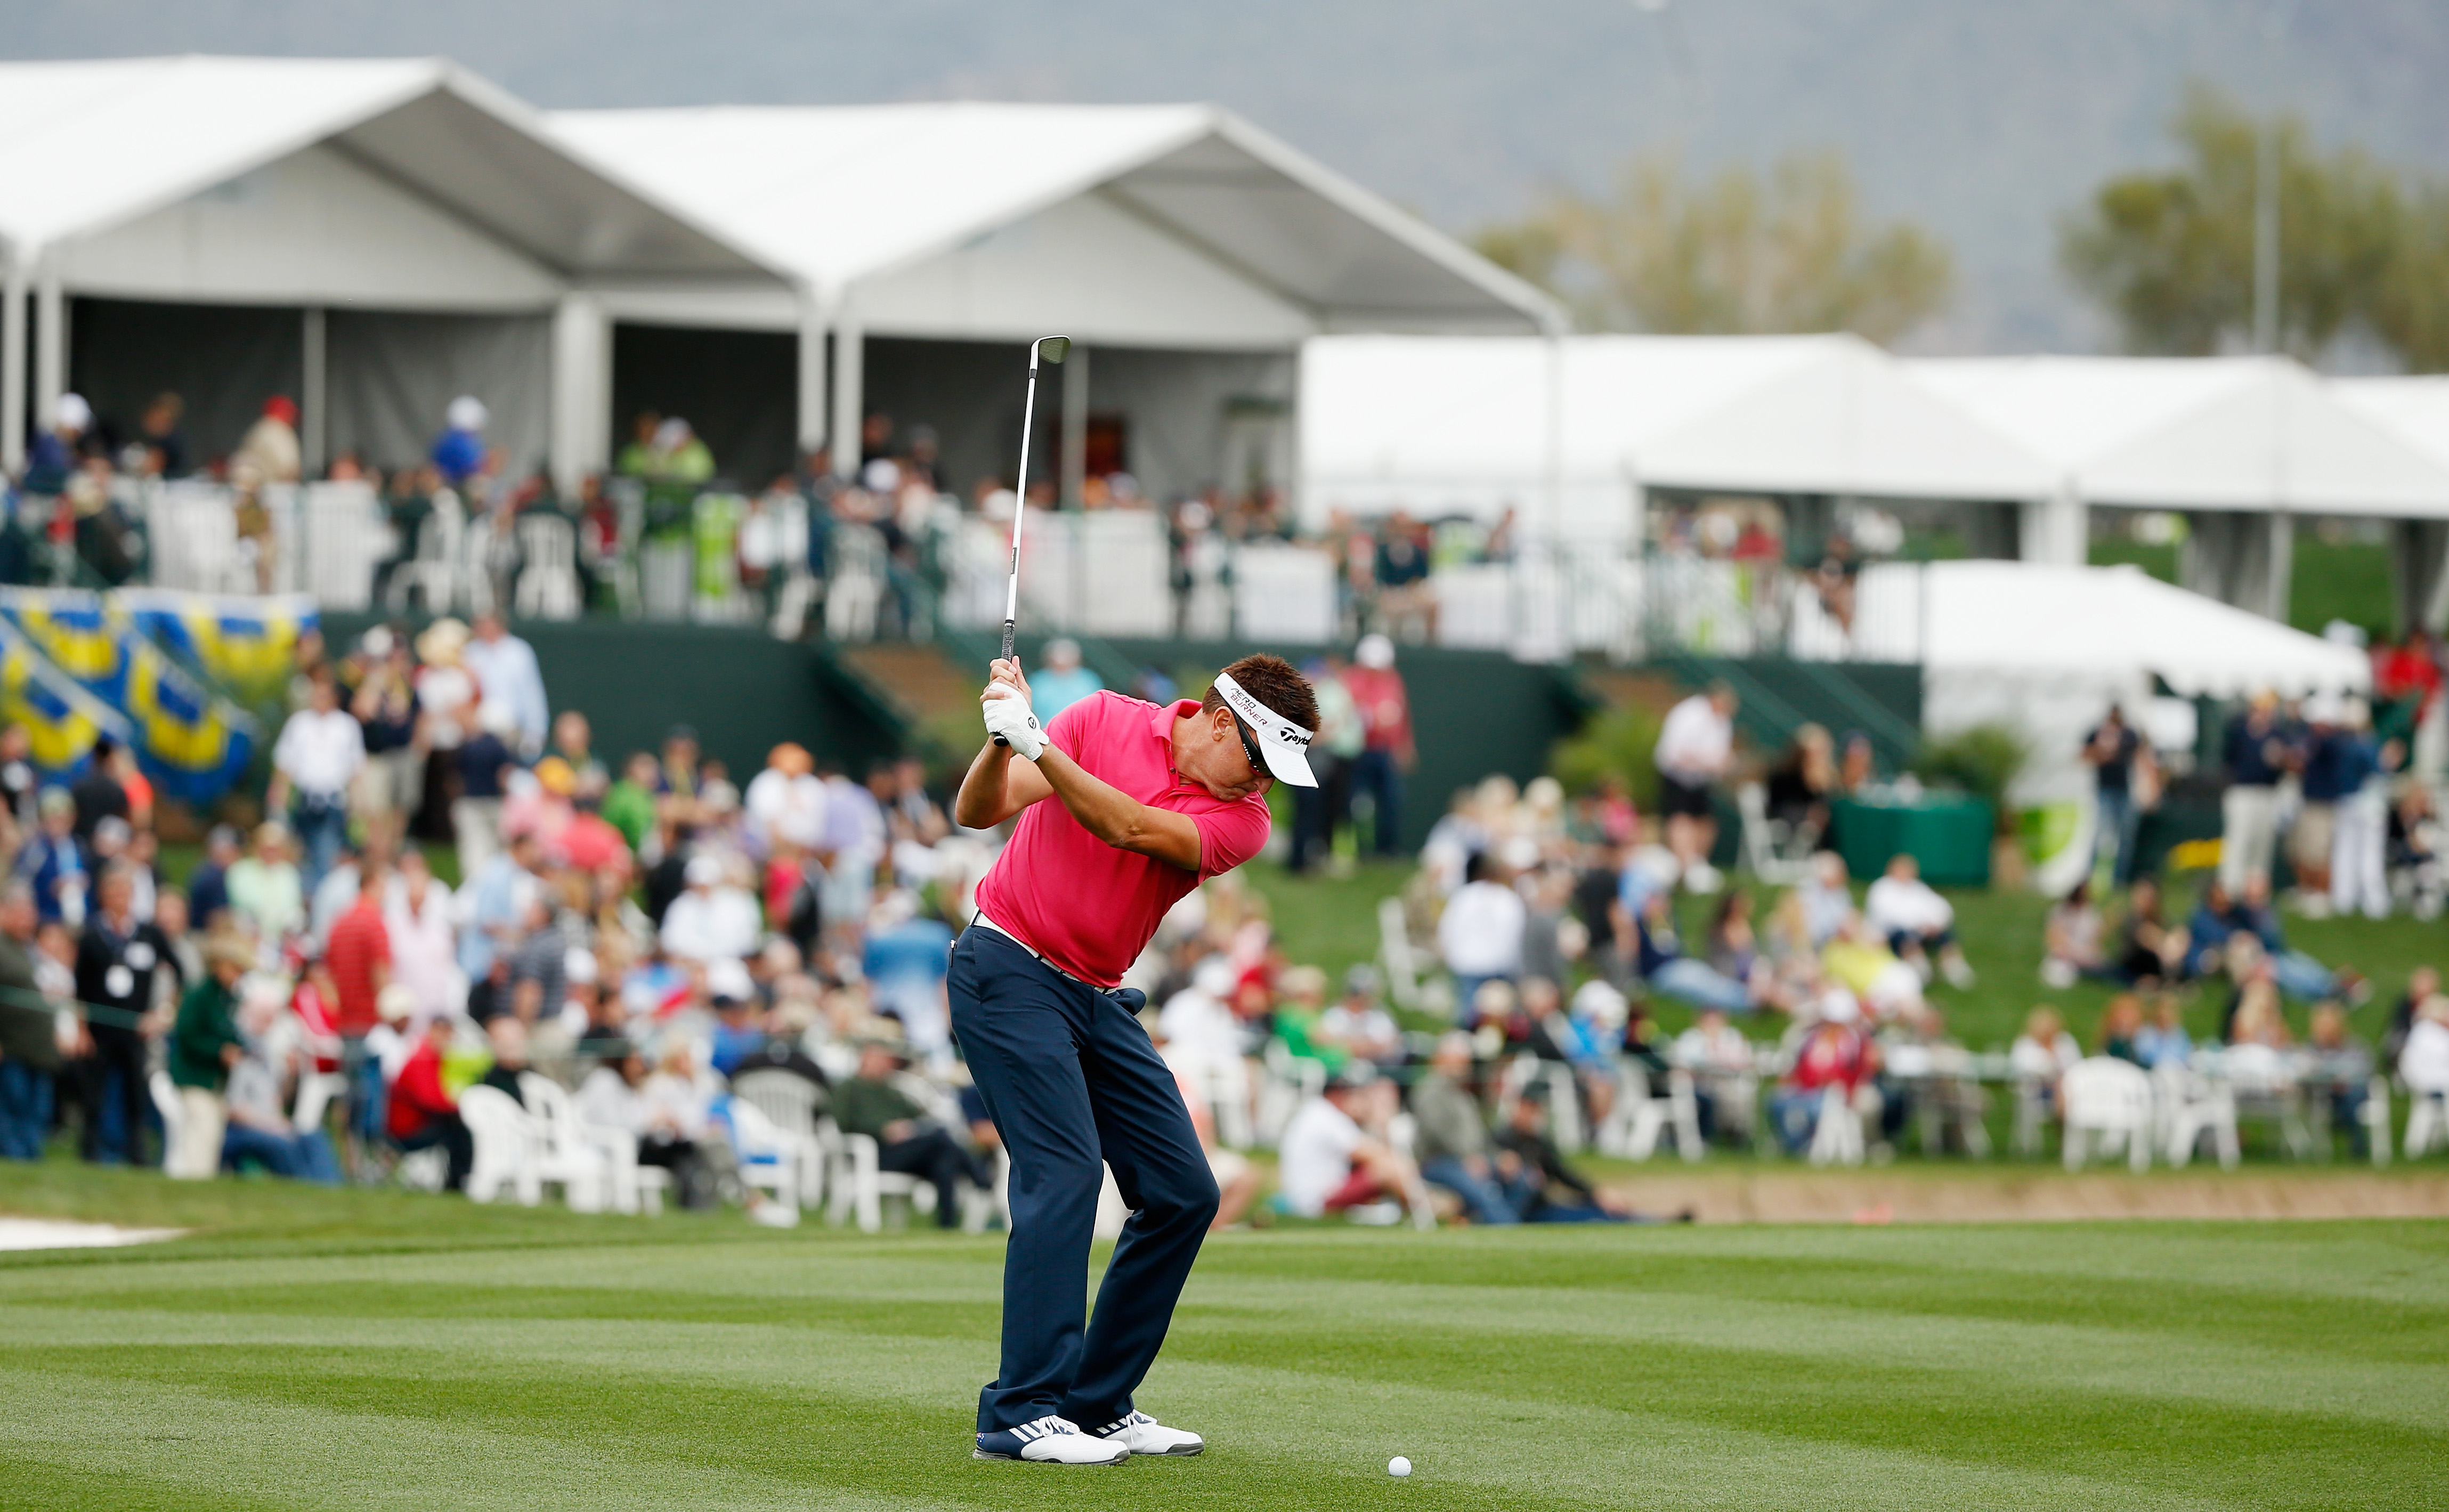 Robert Allenby plays the 17th during his first round at the Waste Management Phoenix Open (Photo: Getty Images)